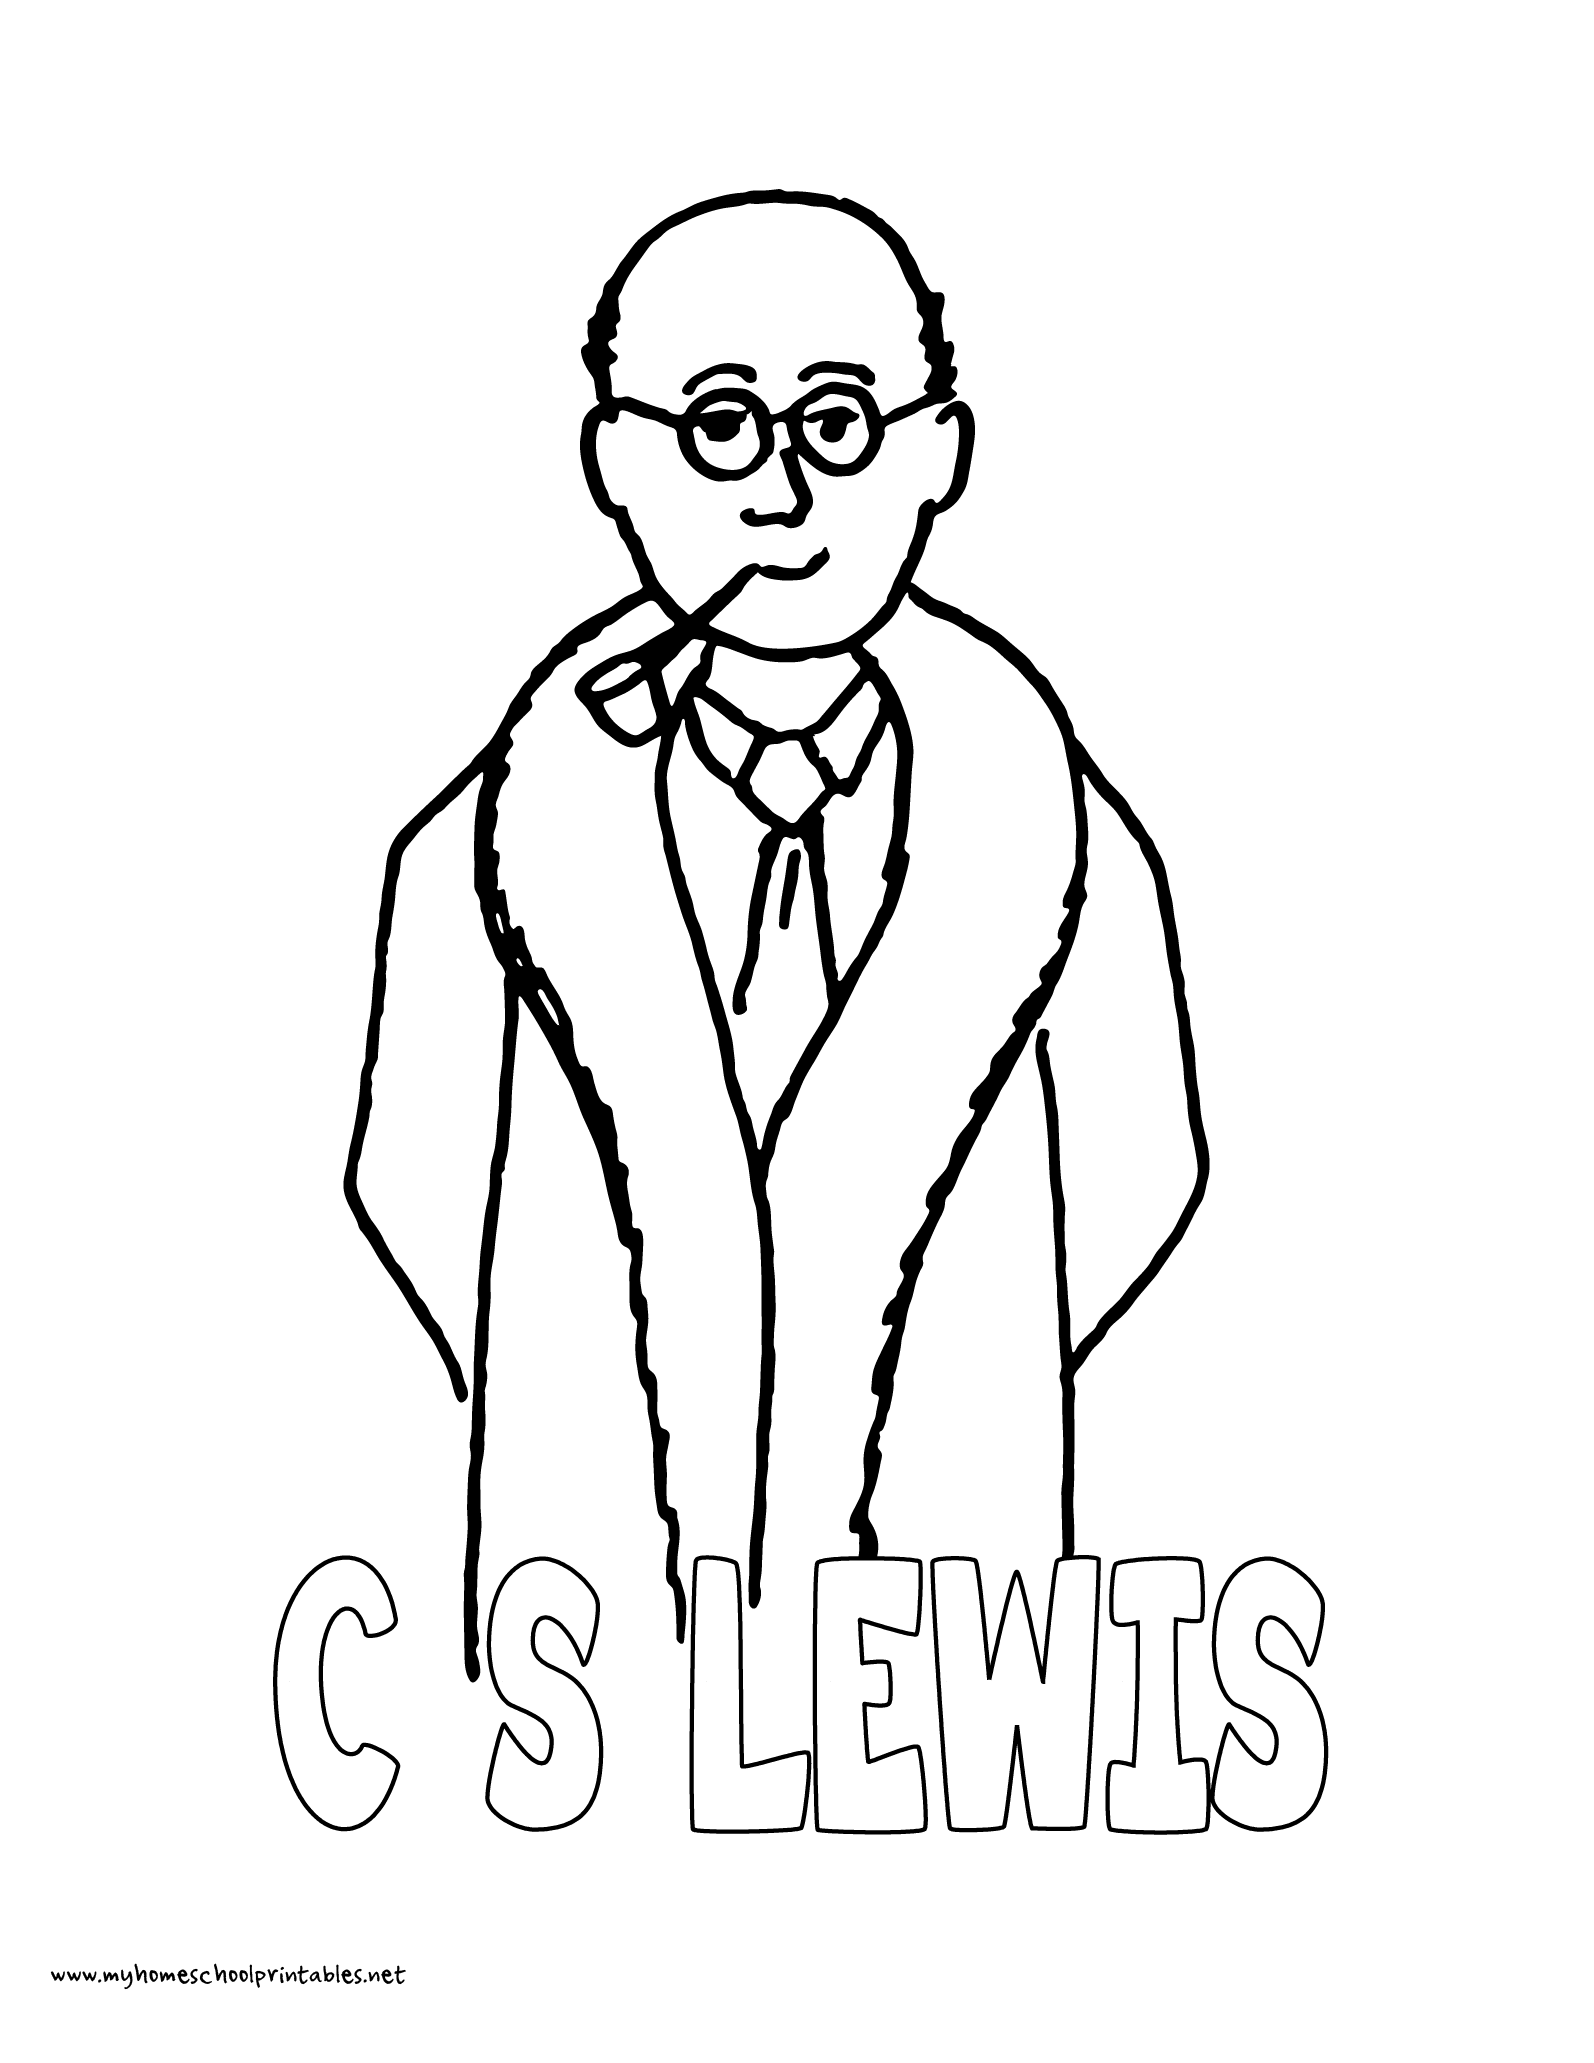 World History Coloring Pages Printables C.S. Lewis with Pipe